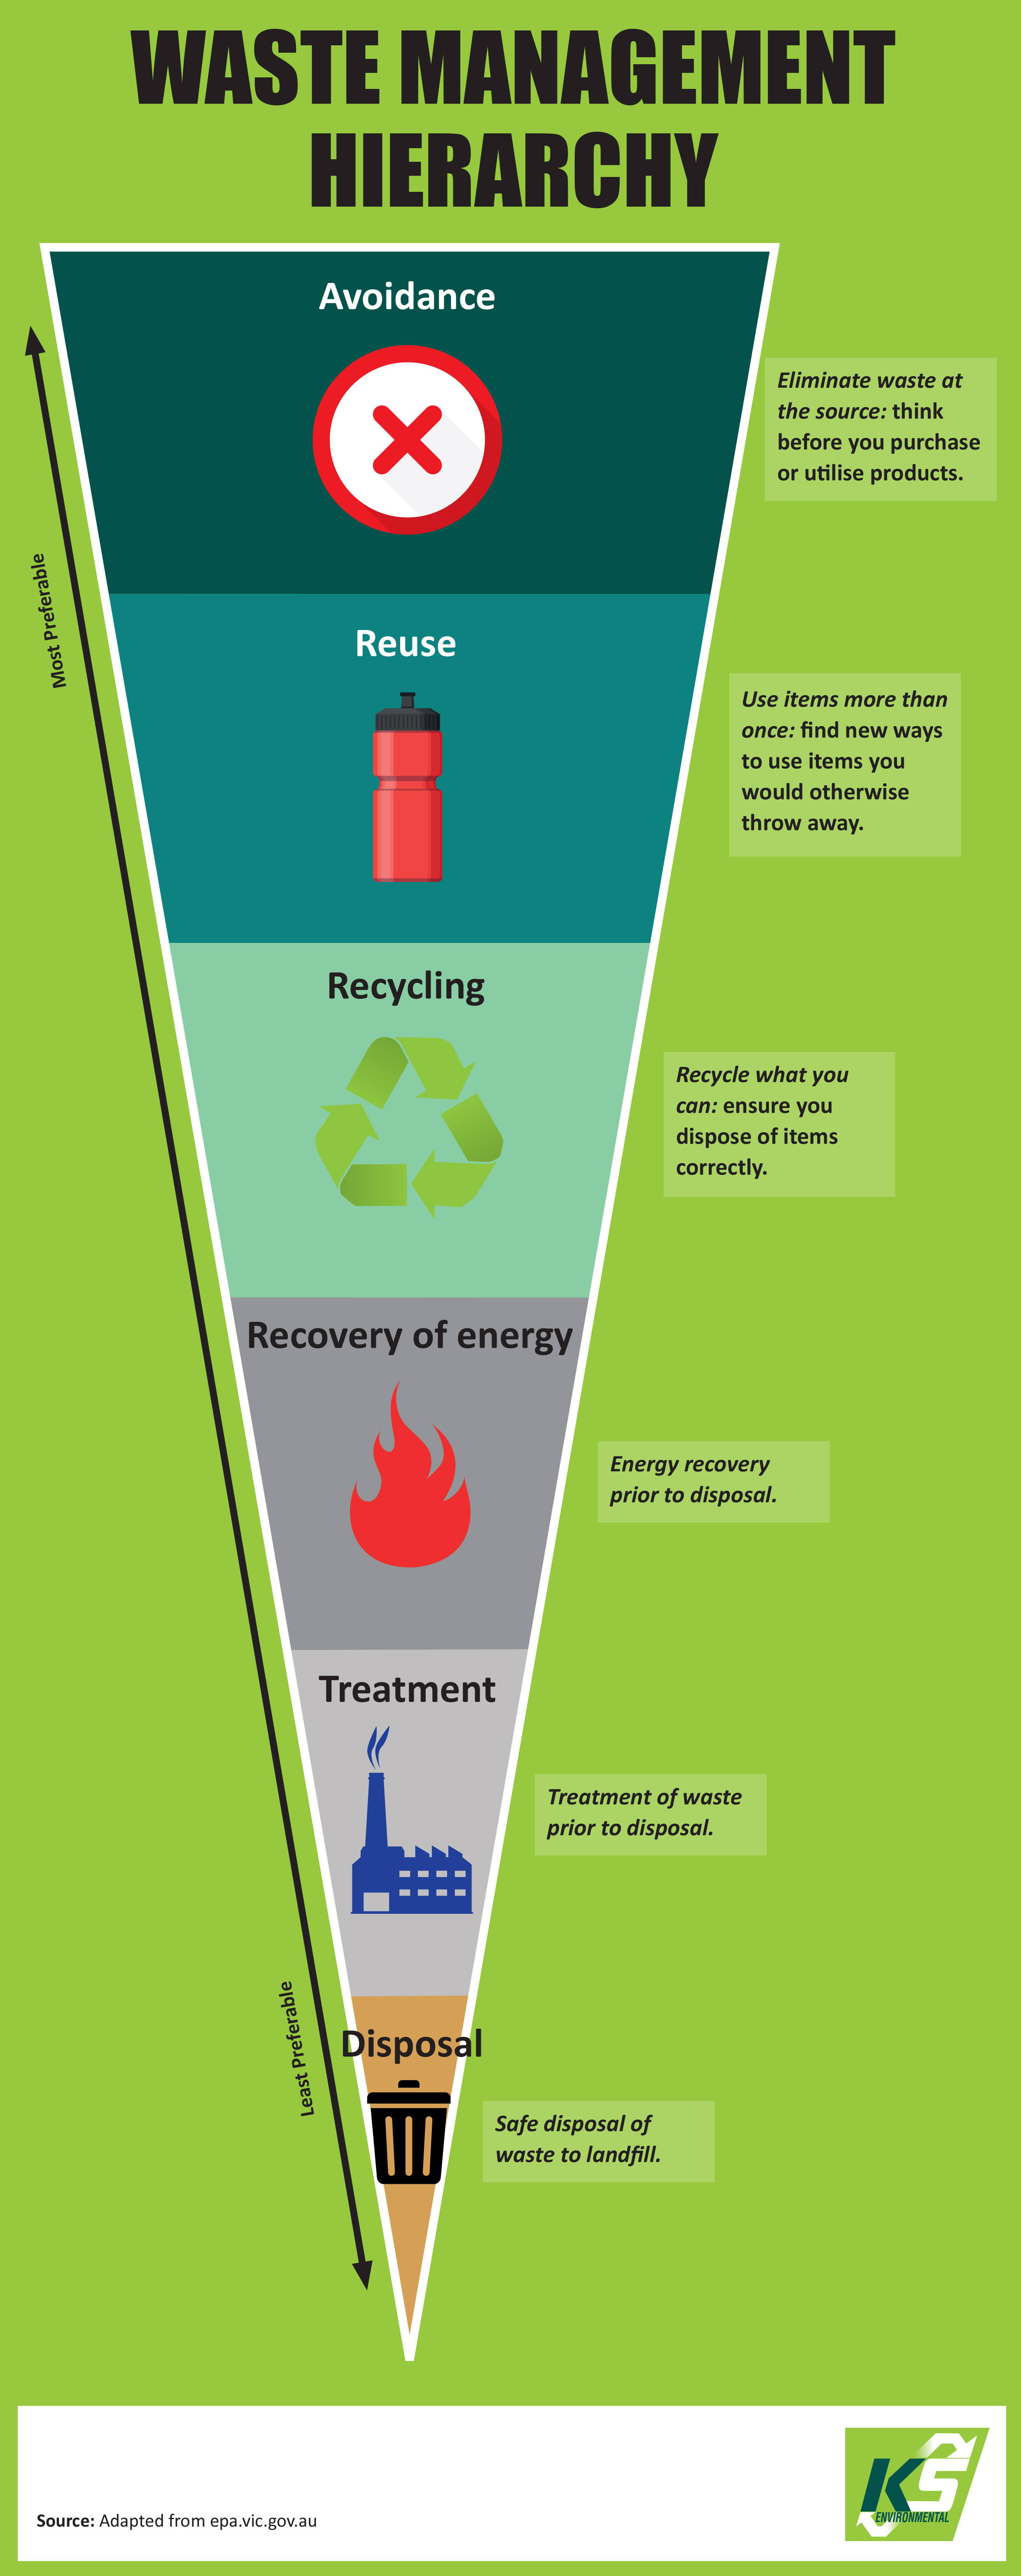 Waste hierarchy infographic